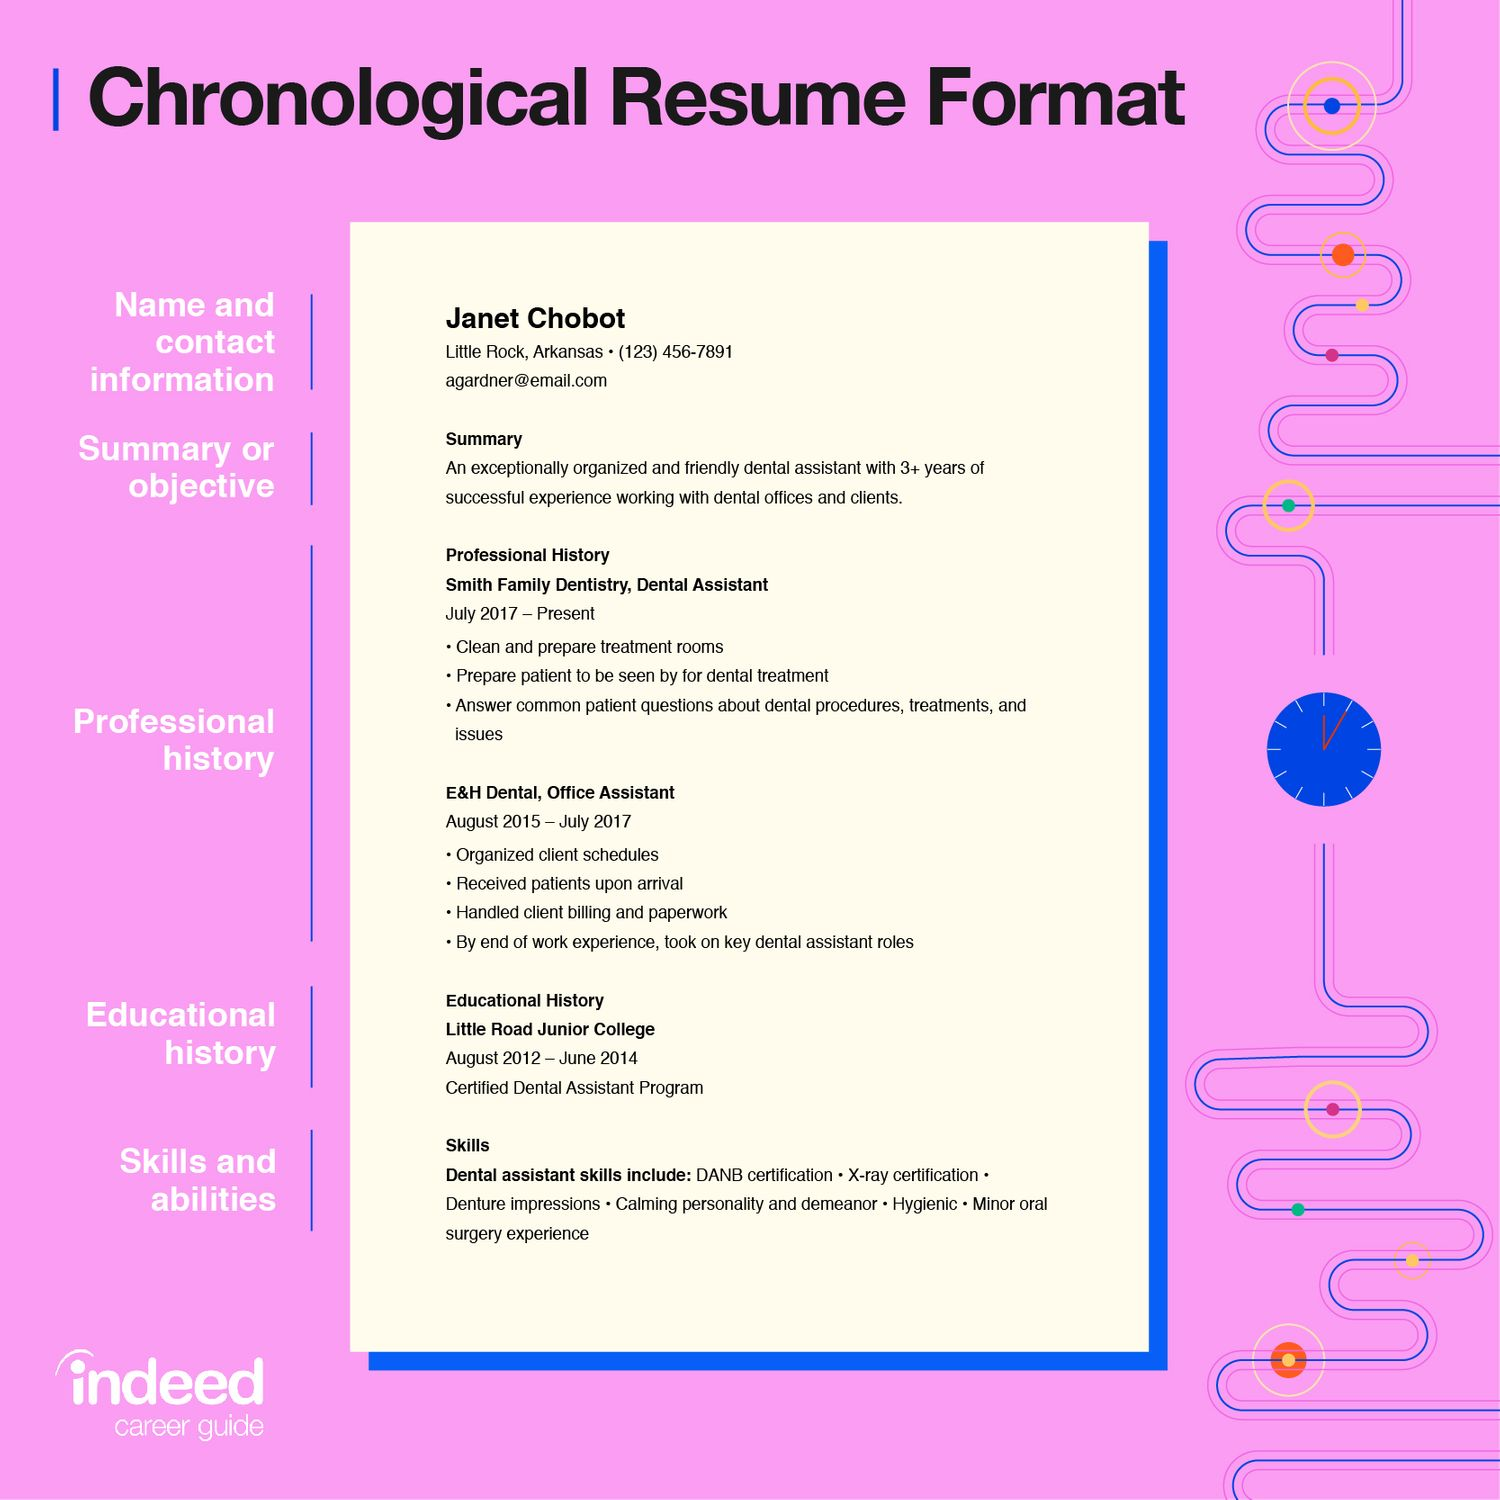 resume format guide tips and examples of the best formats indeed for experienced resized Resume The Best Resume Format For Experienced